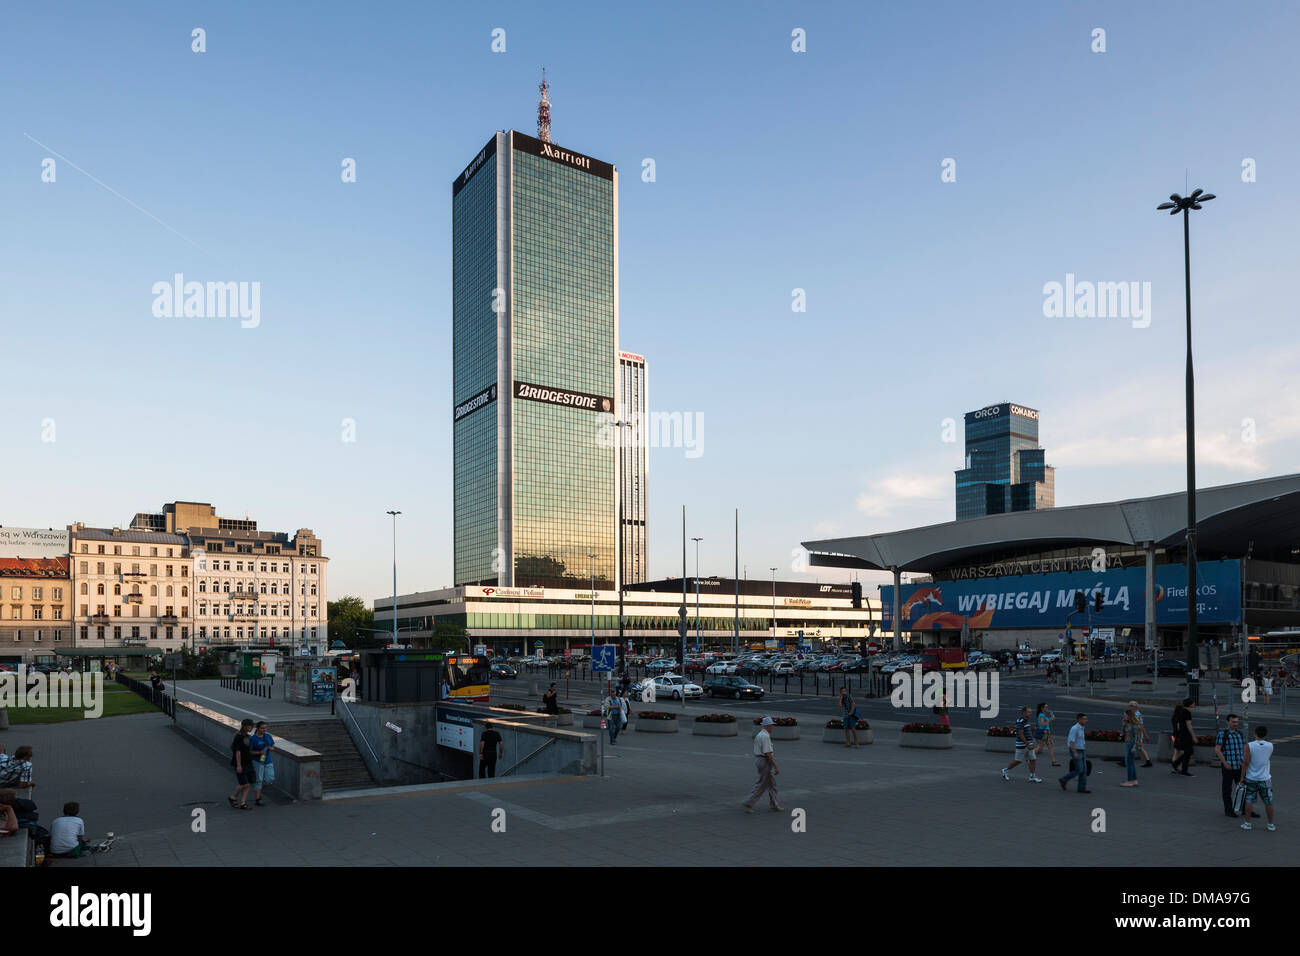 Warsaw Cityscape, Warsaw, Poland. Architect: Various, 2013. Distant view to Marriott Hotel tower with Central Train Stock Photo